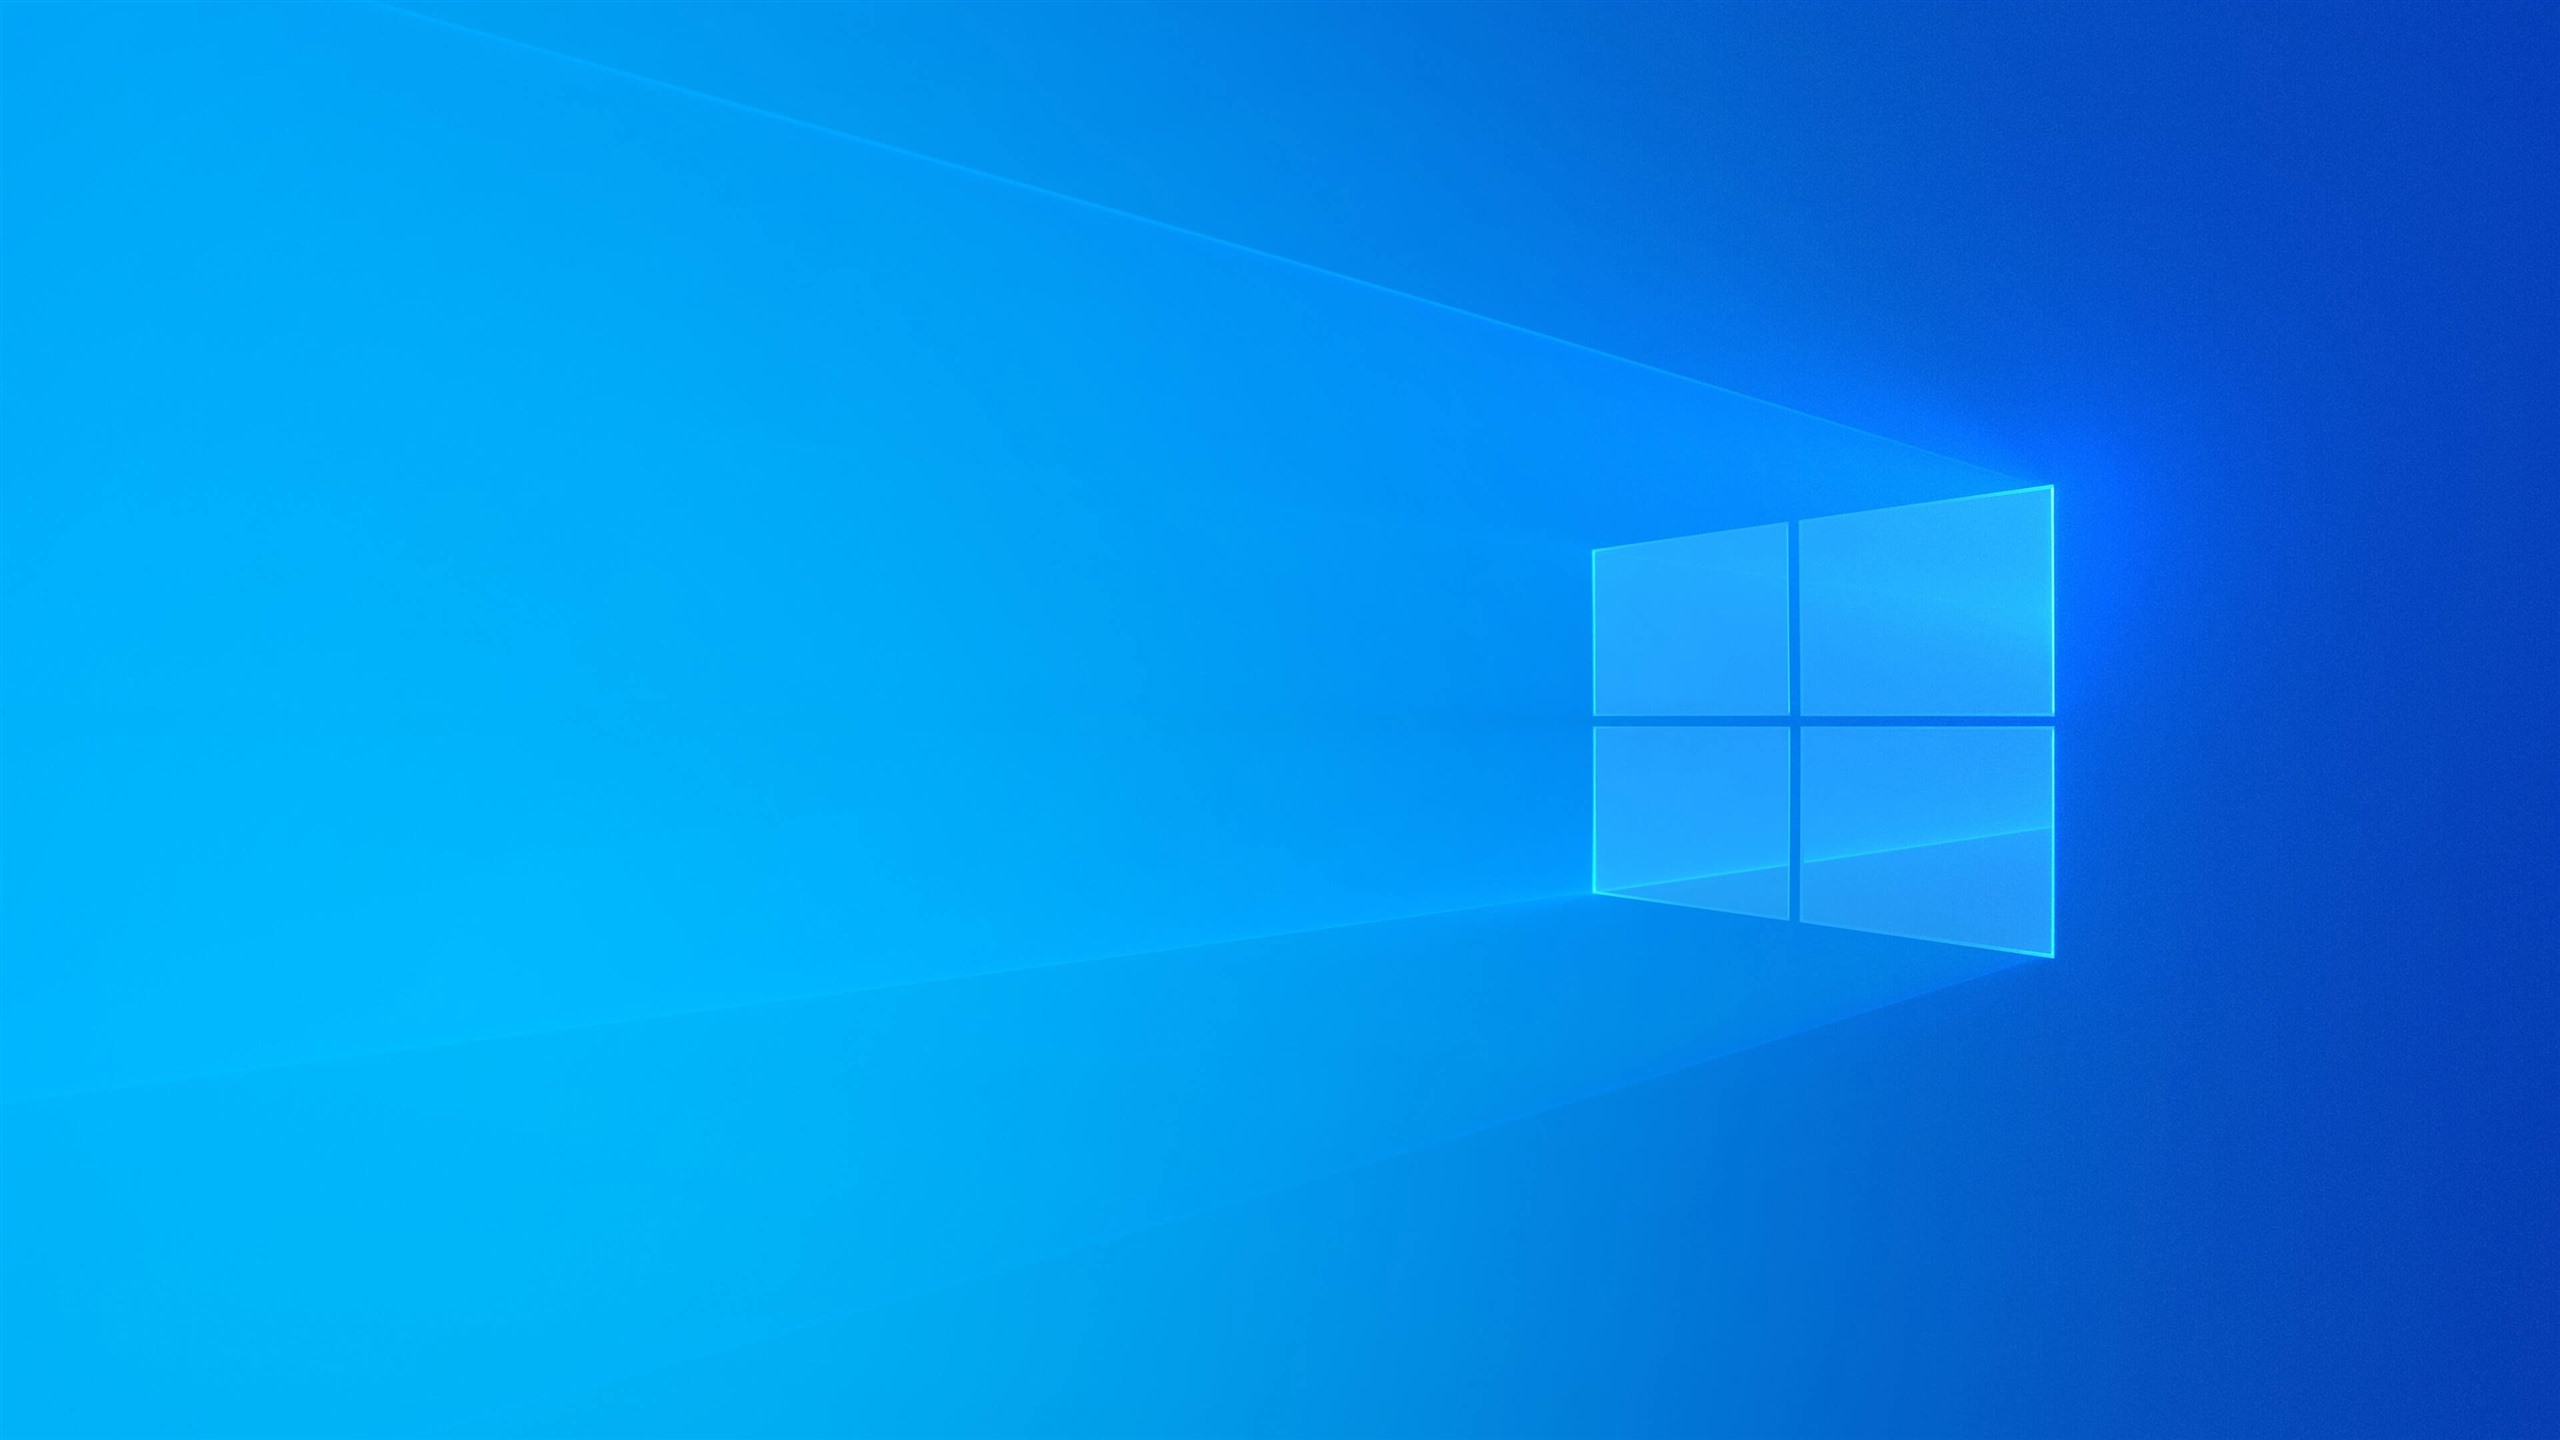 Wallpaper Windows 10 Blue Background Light Abstract